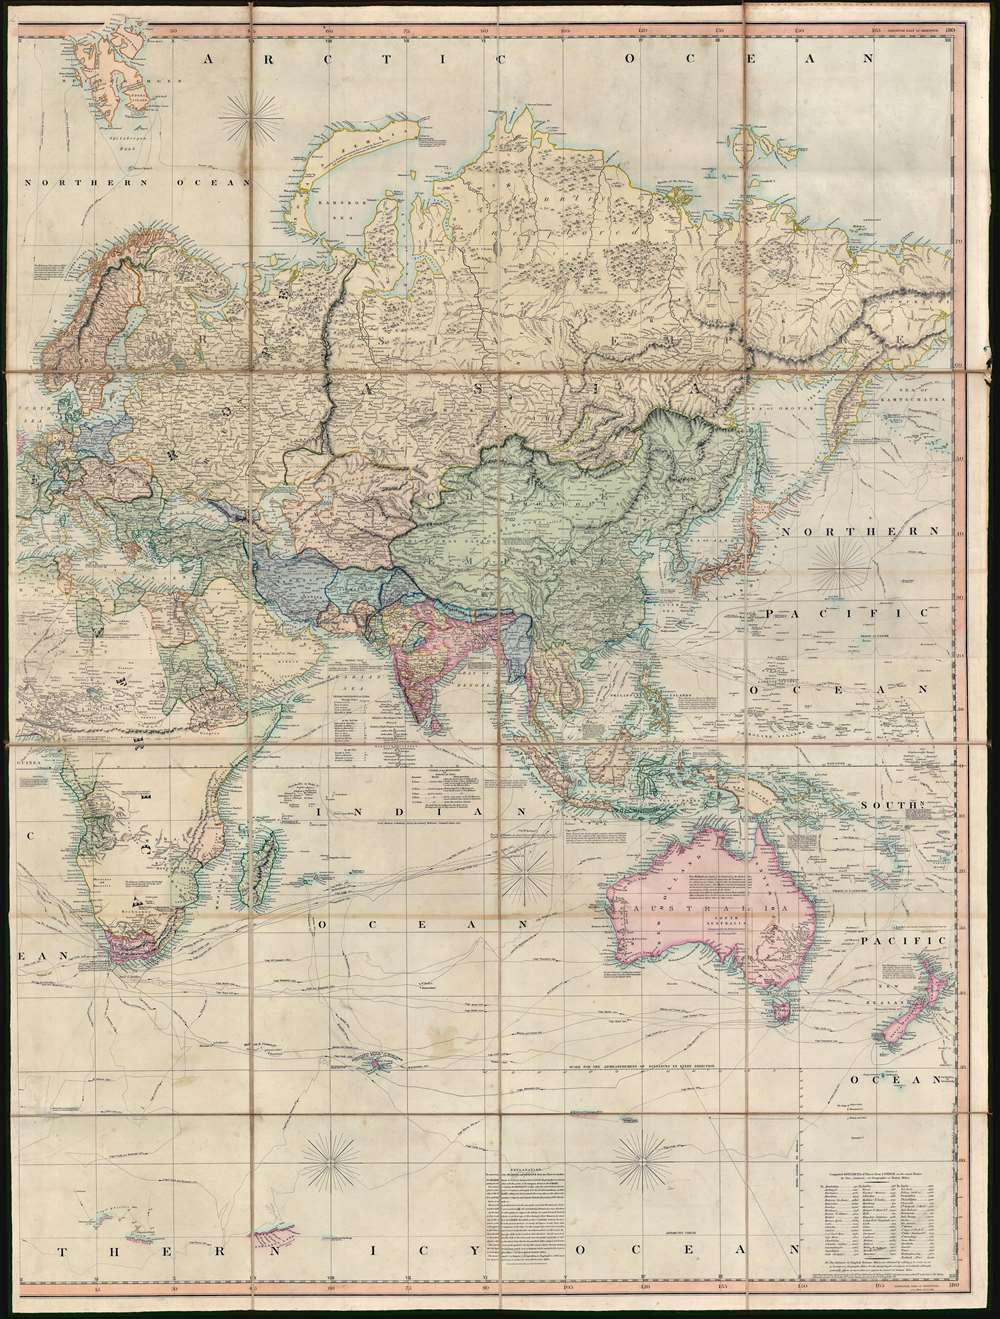 A New Chart of the World On Mercator's Projection With The Tracks Of The Most Celebrated and Recent Navigators. - Alternate View 3